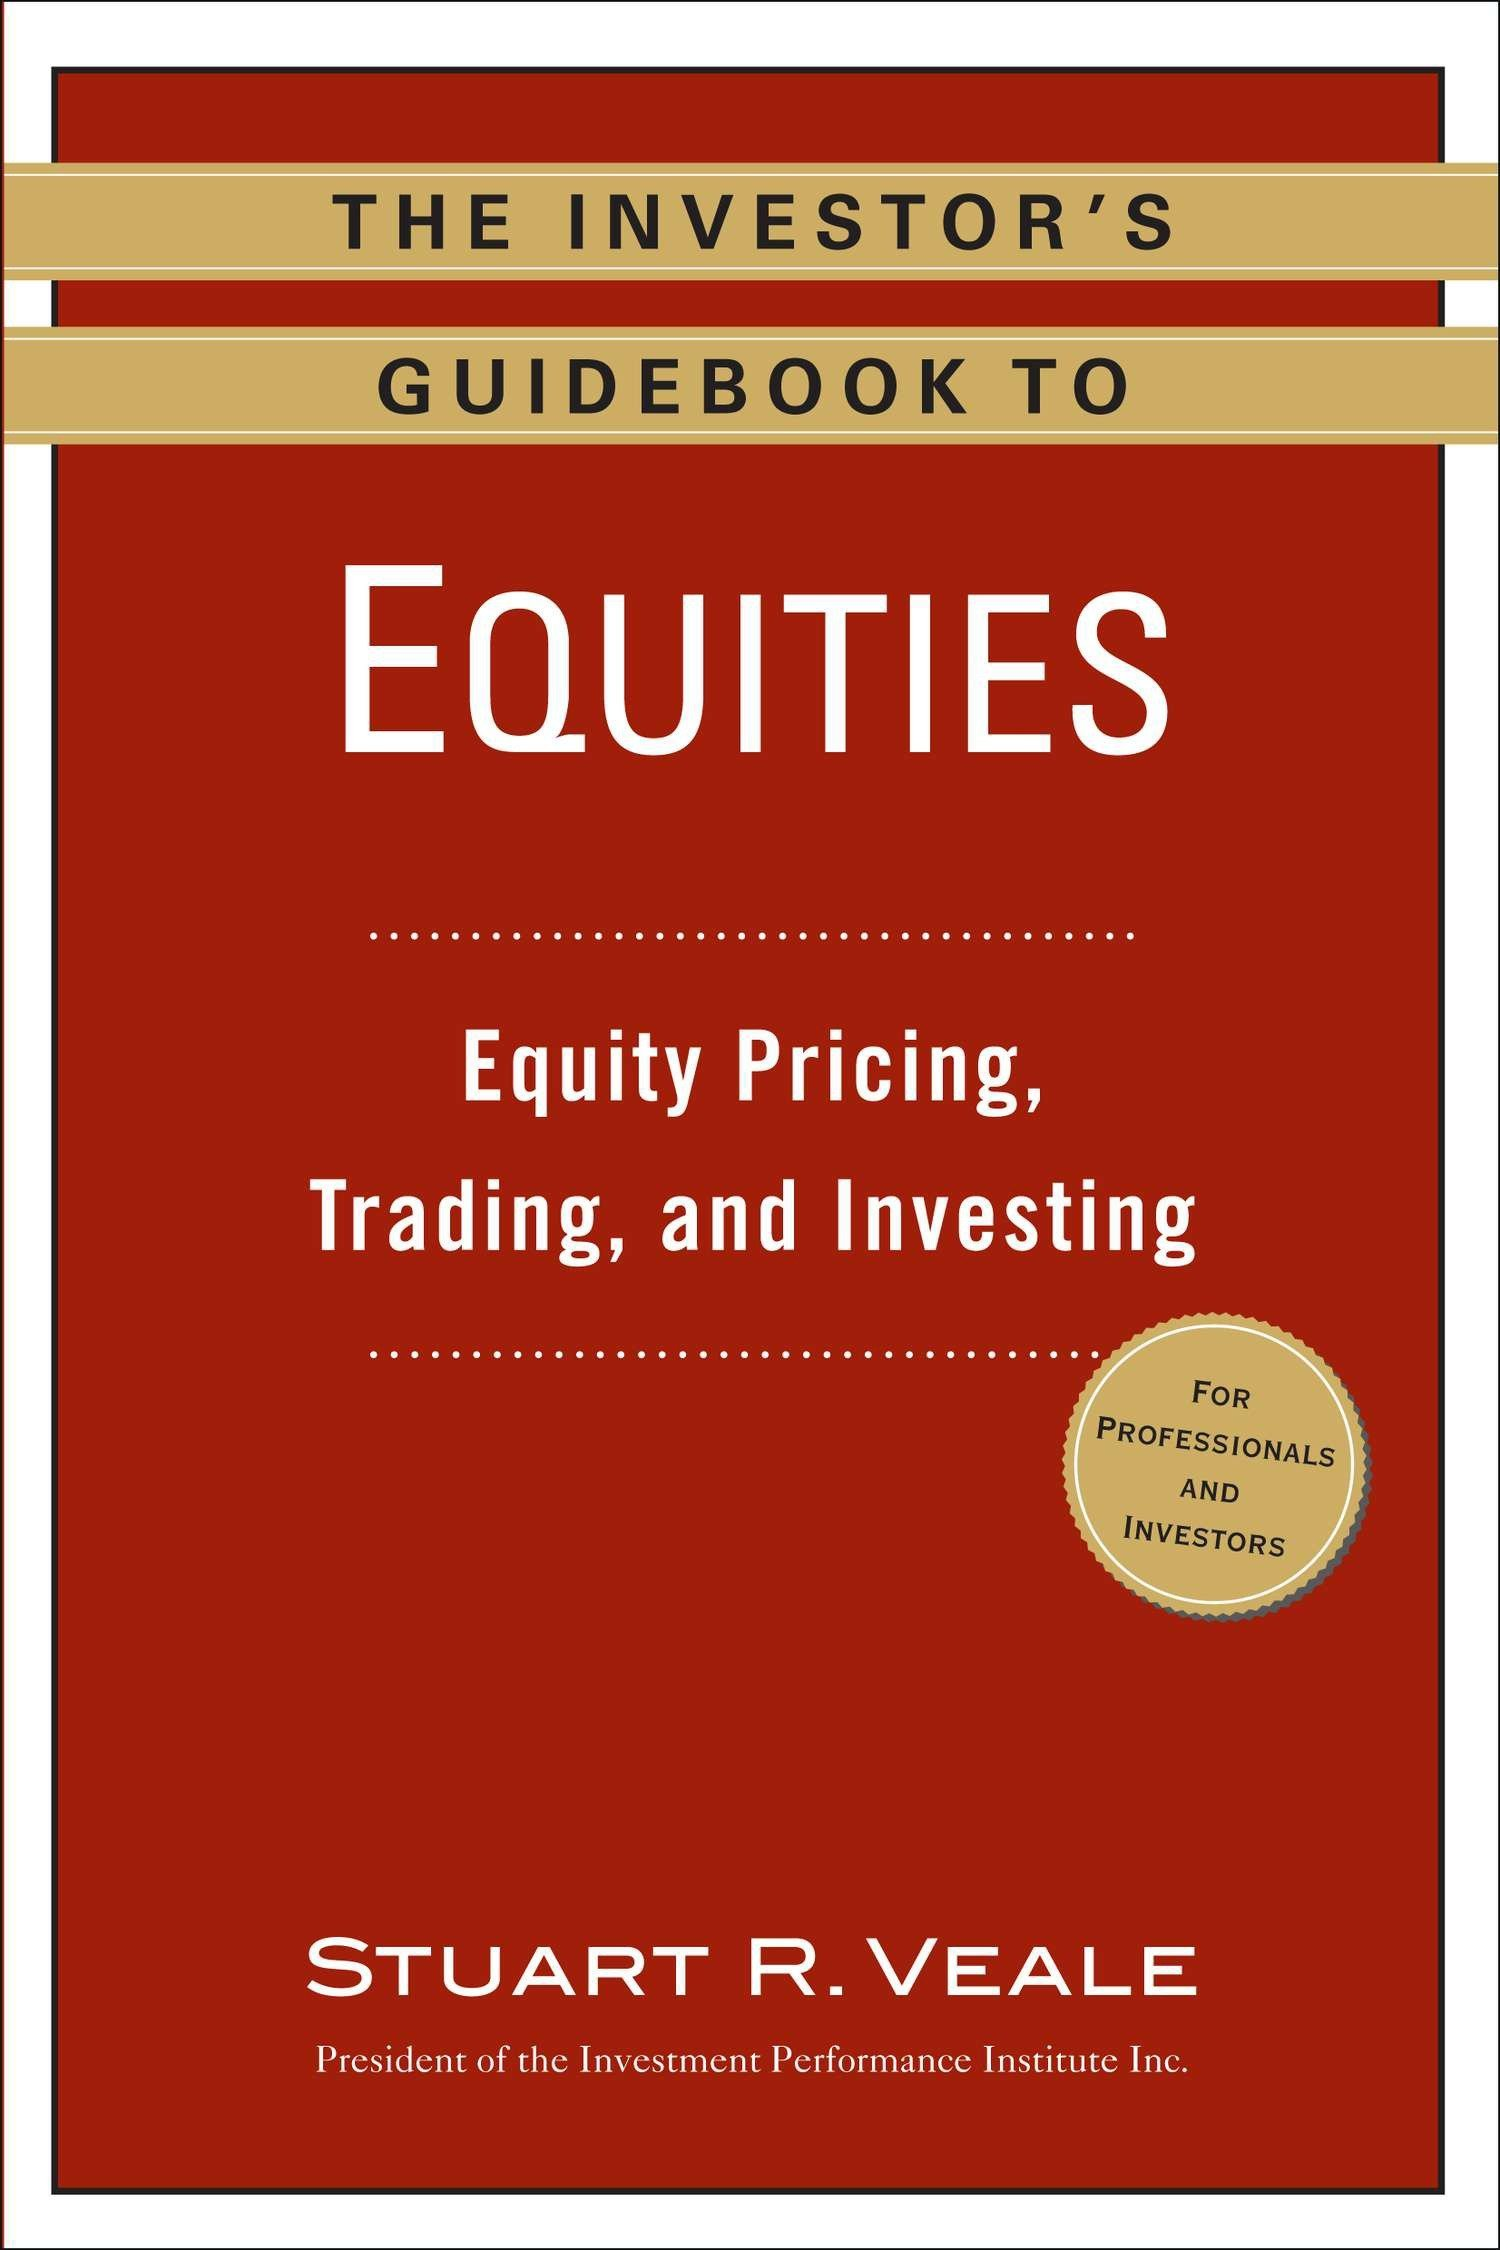 Download The Investor's Guidebook to Equities: Equity Pricing, Trading, and Investing ebook